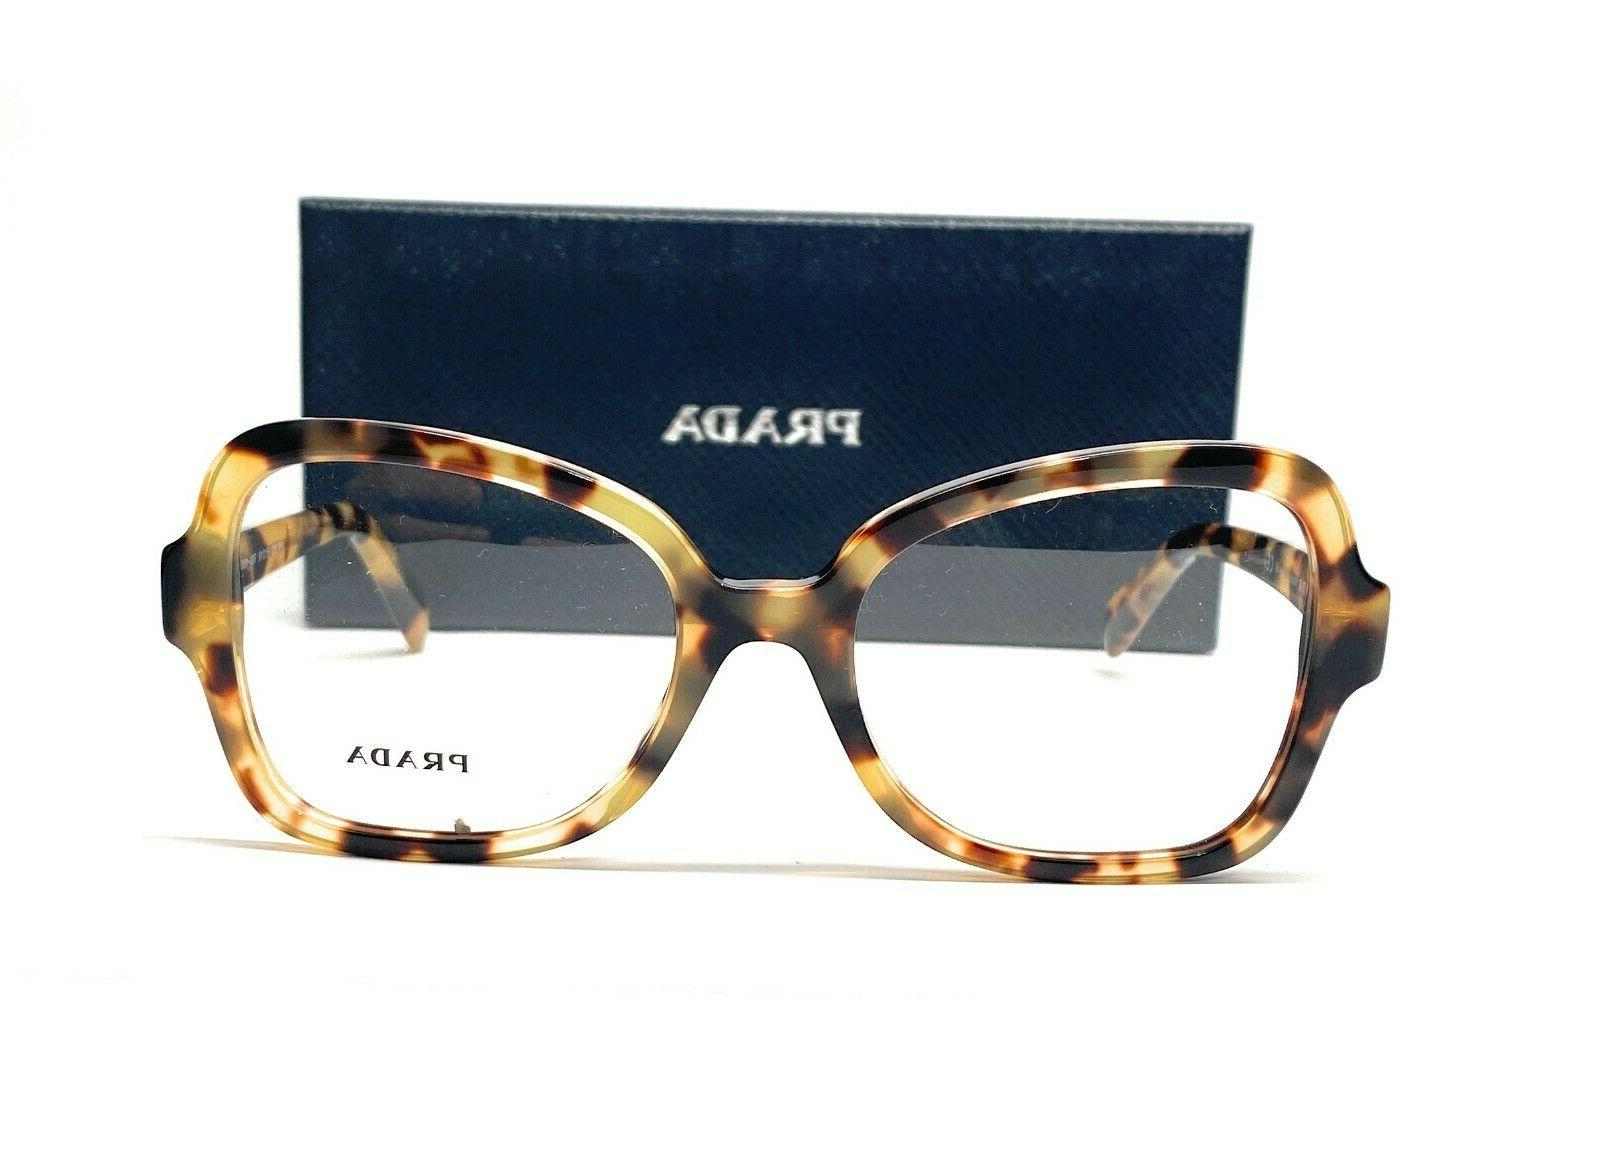 Medium Women's Eyeglasses 51mm